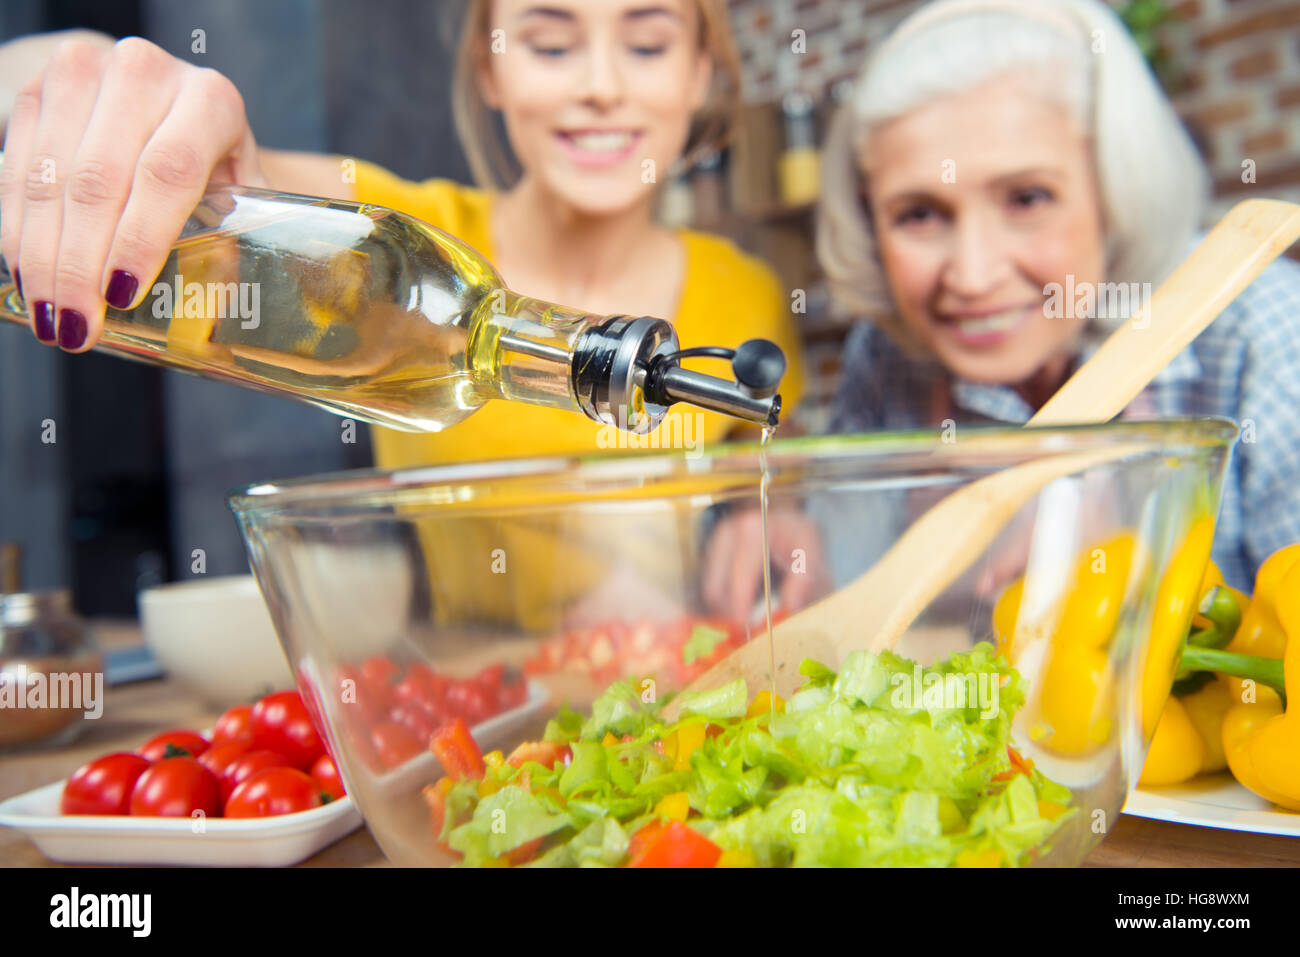 Granddaughter and grandmother cooking together and pouring oil into vegetable salad - Stock Image